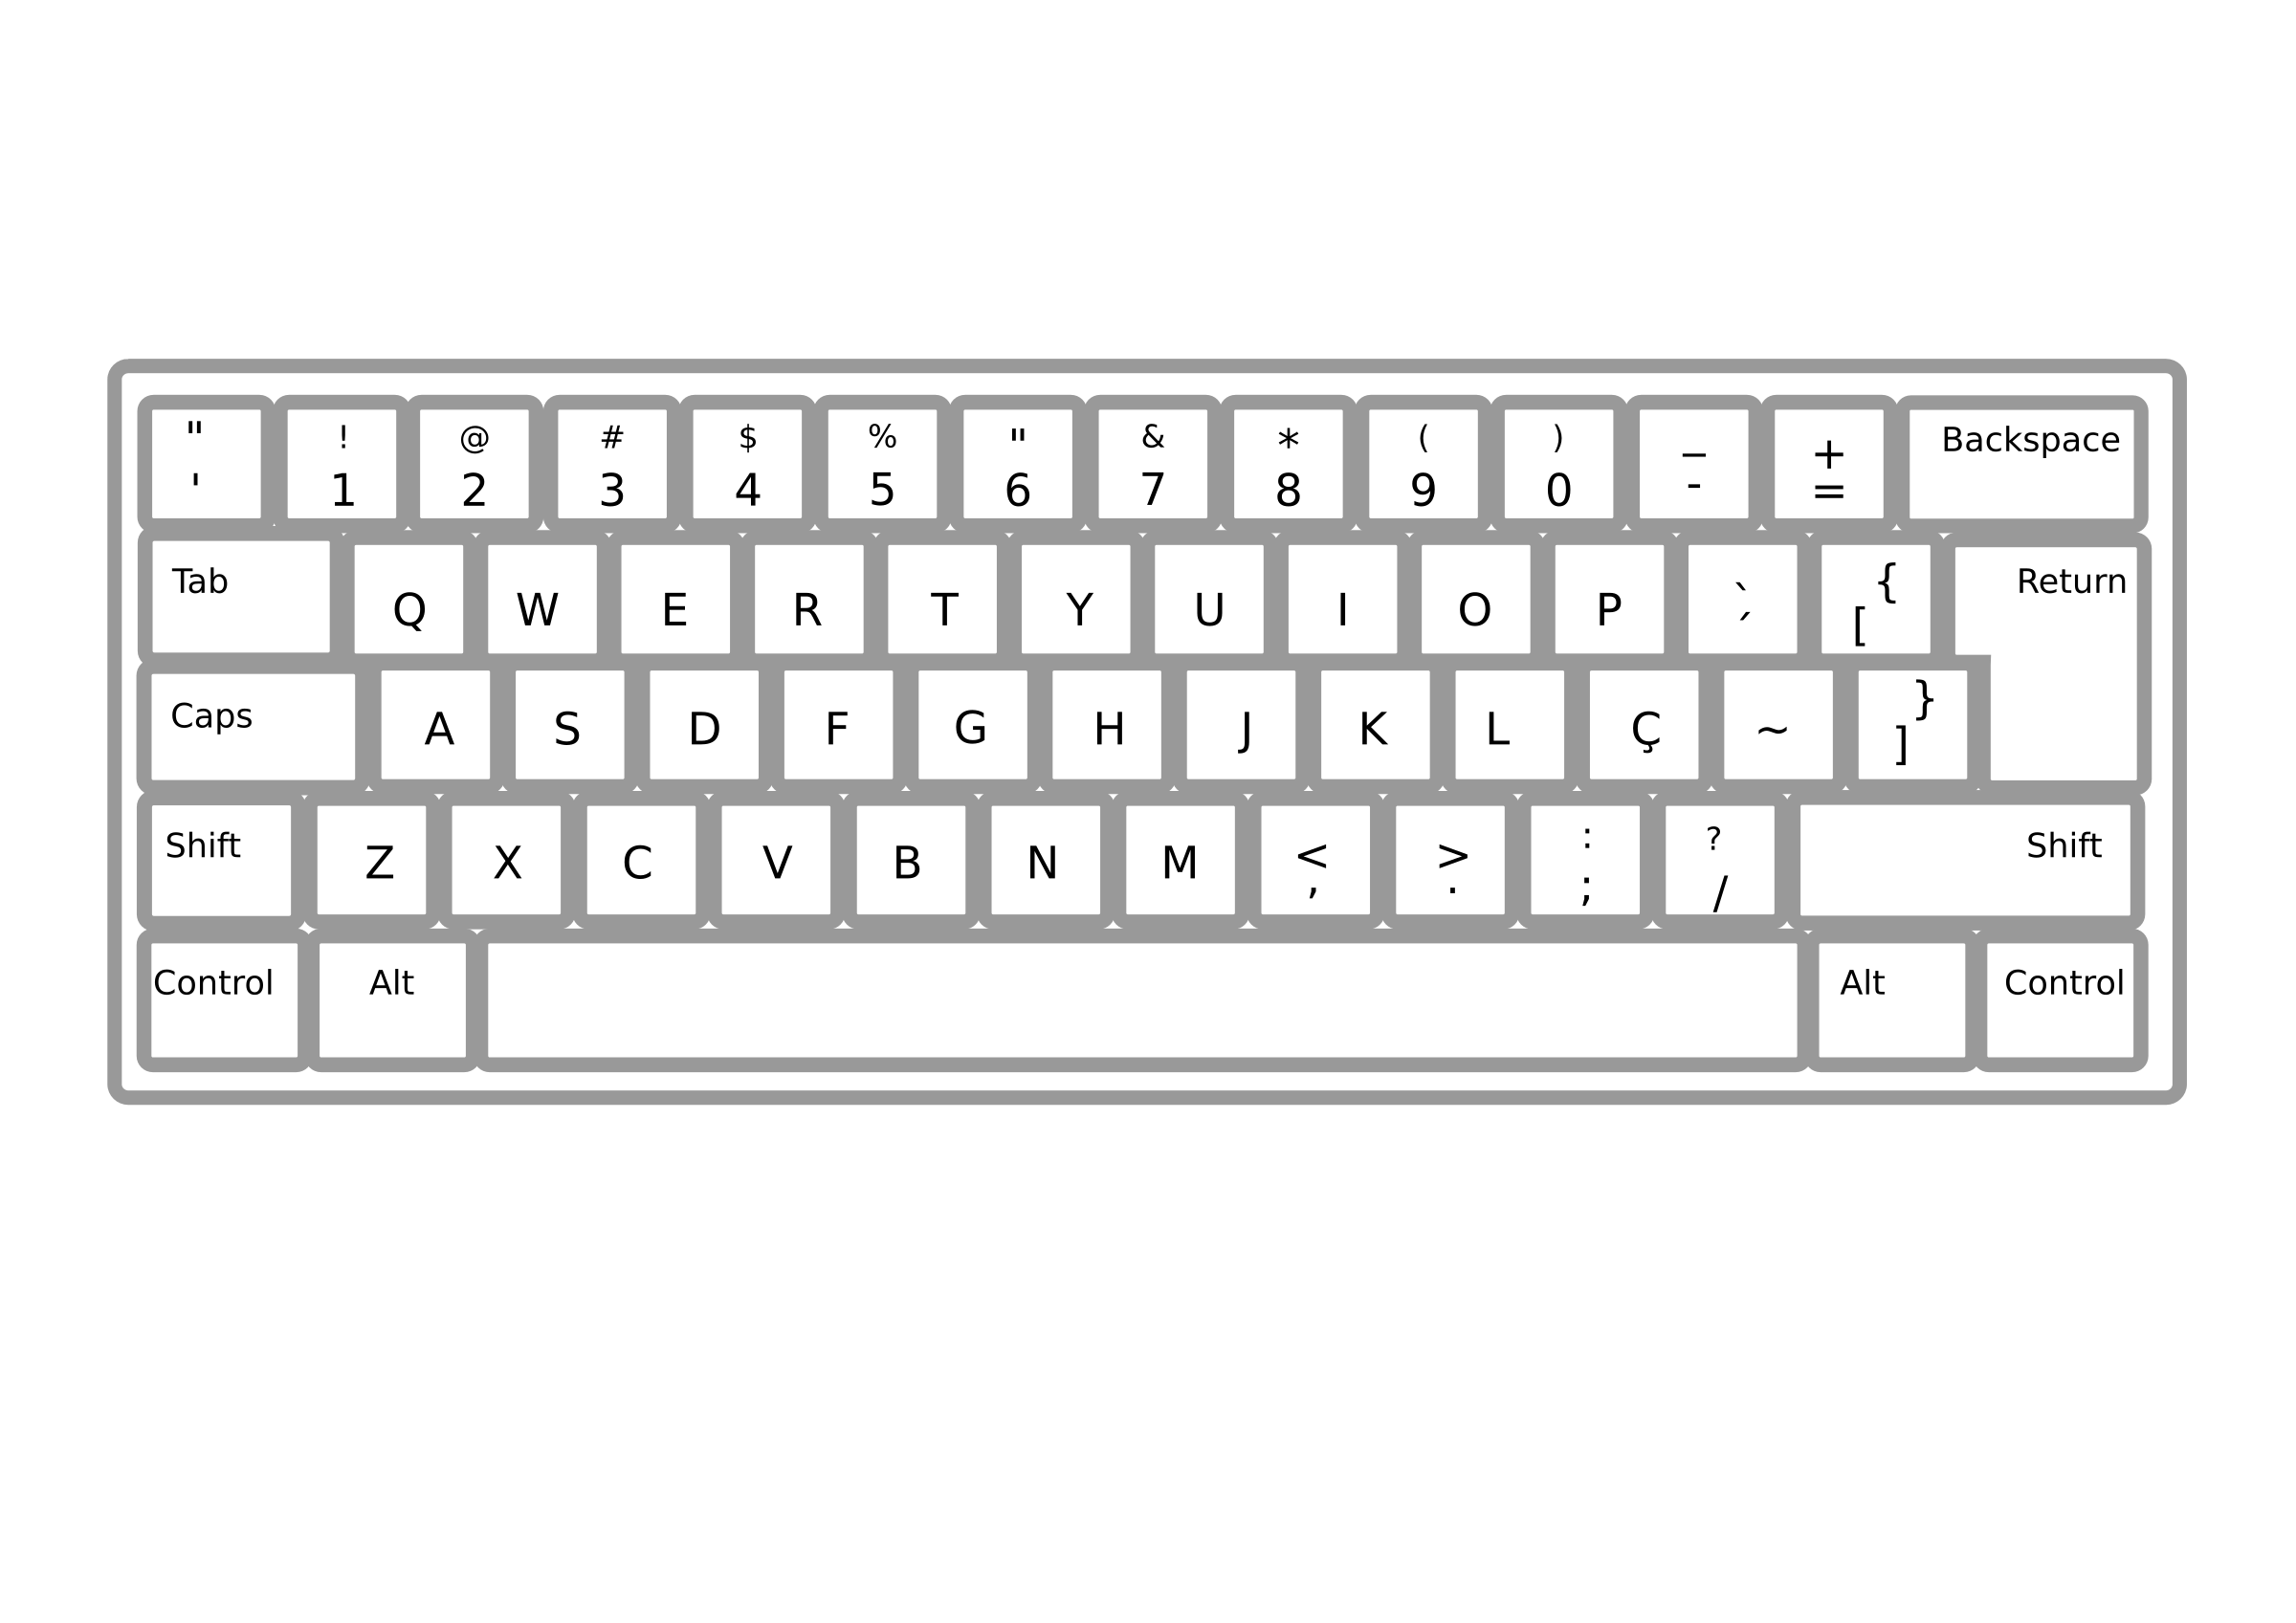 Keyboard ABNT2 Pt Br by Minduka